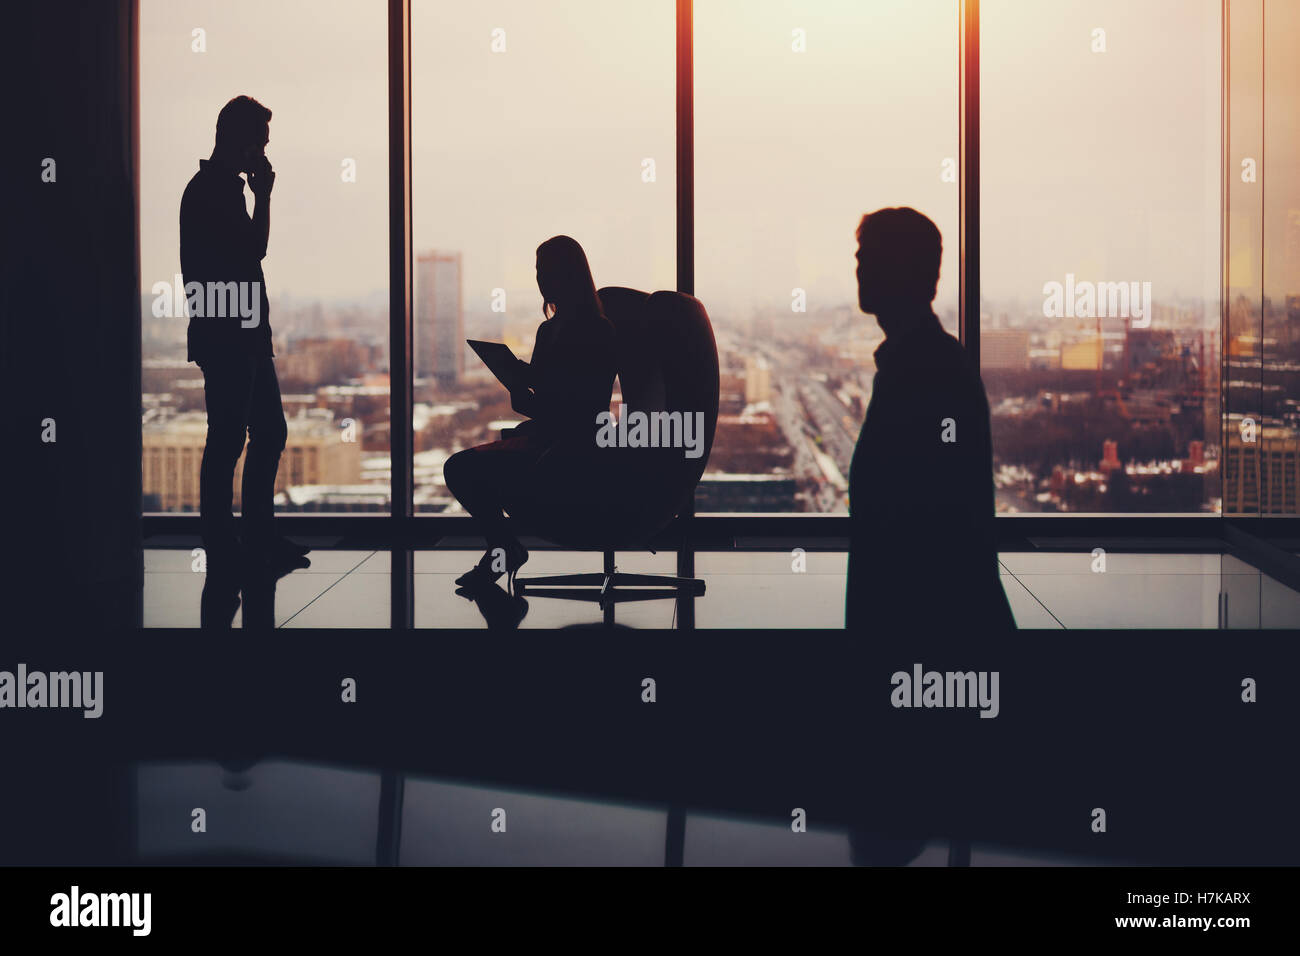 Silhouettes of business people: businessman with businesswoman waiting for their third colleague which is already - Stock Image